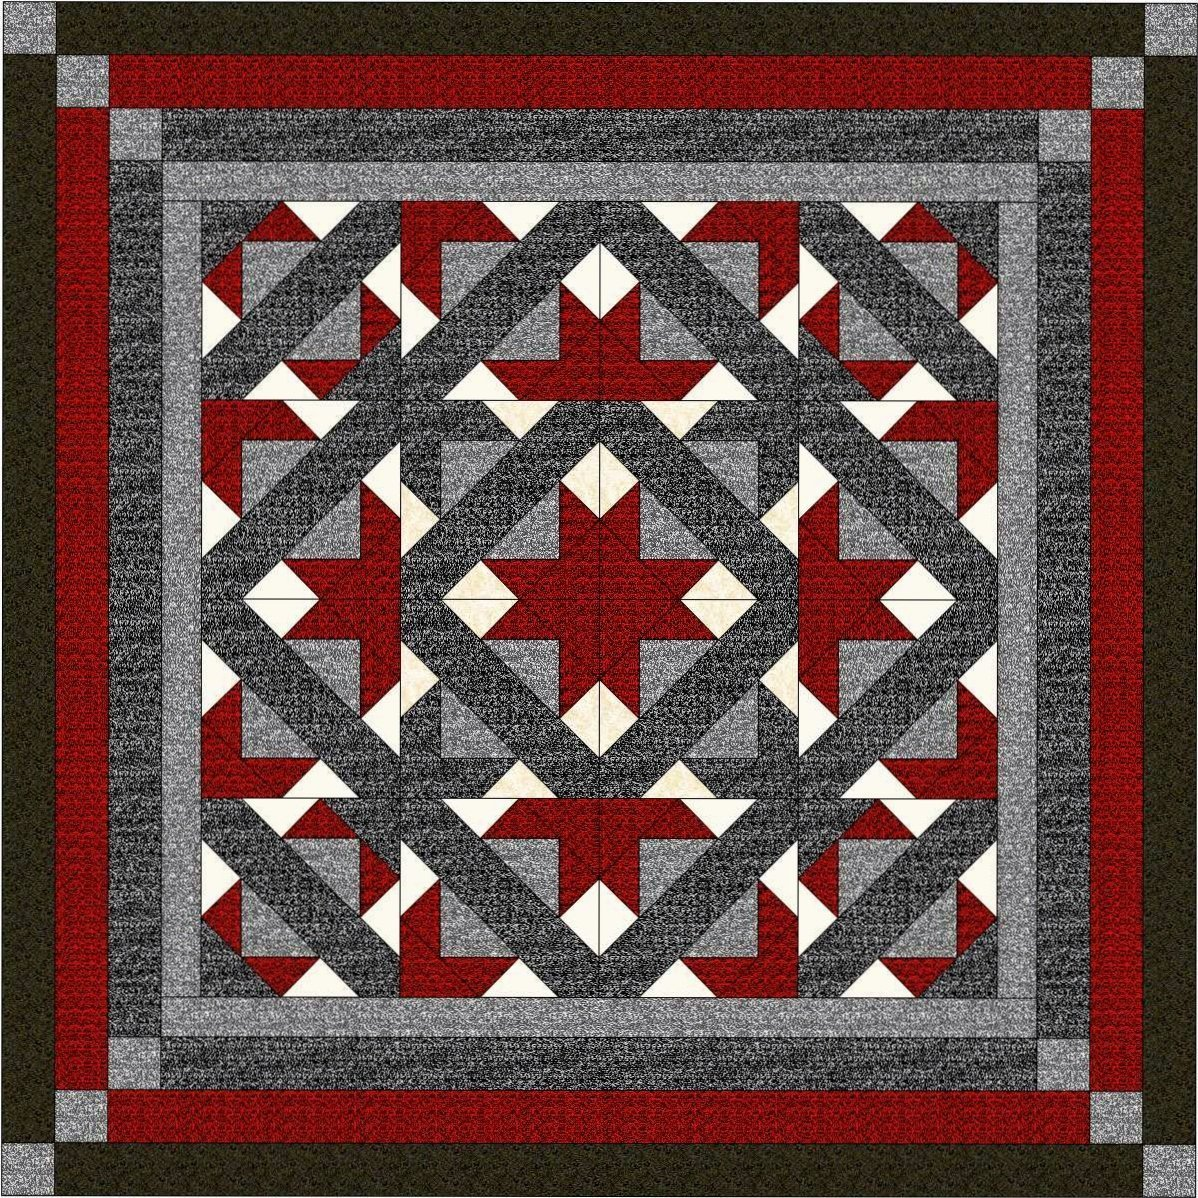 Easy Quilt Kit Path to the Stars!! Red, Black, Gray/King/Expedited Shipping Galaxy/RJR